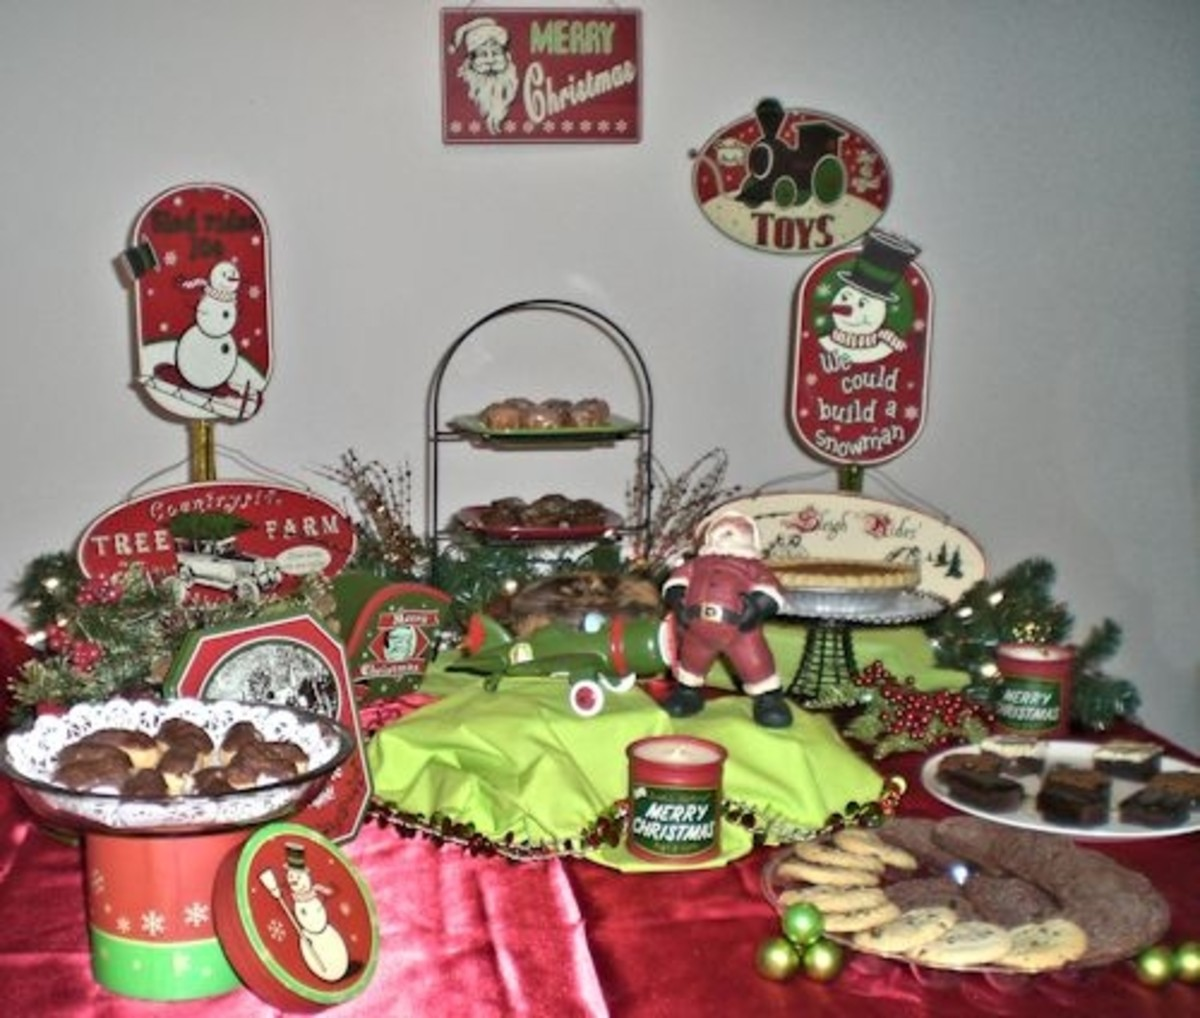 The decor for this buffet includes vintage metal signs of different shapes and sizes, lighted evergreen garland, retro style gift box, airplane, Santa and sleigh.